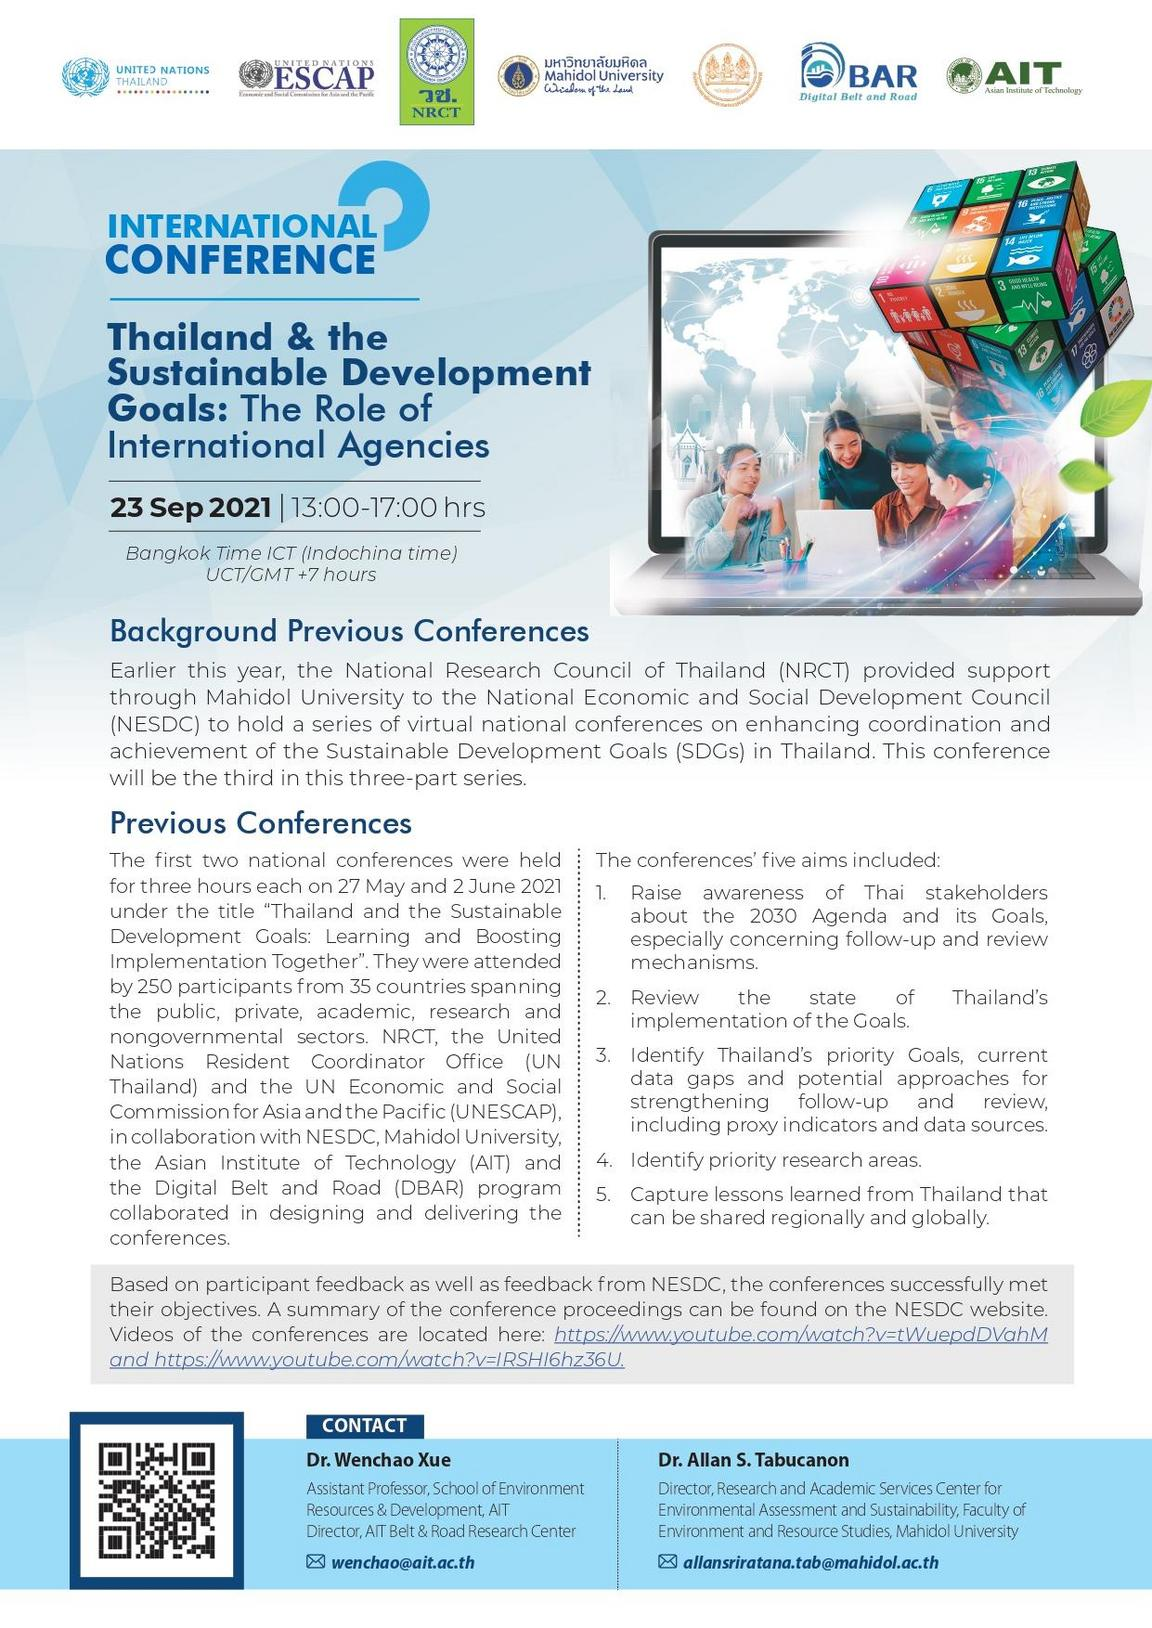 Intl Conf on Thailand and SDGs_23 Sep 2021-Flyer_page-0001